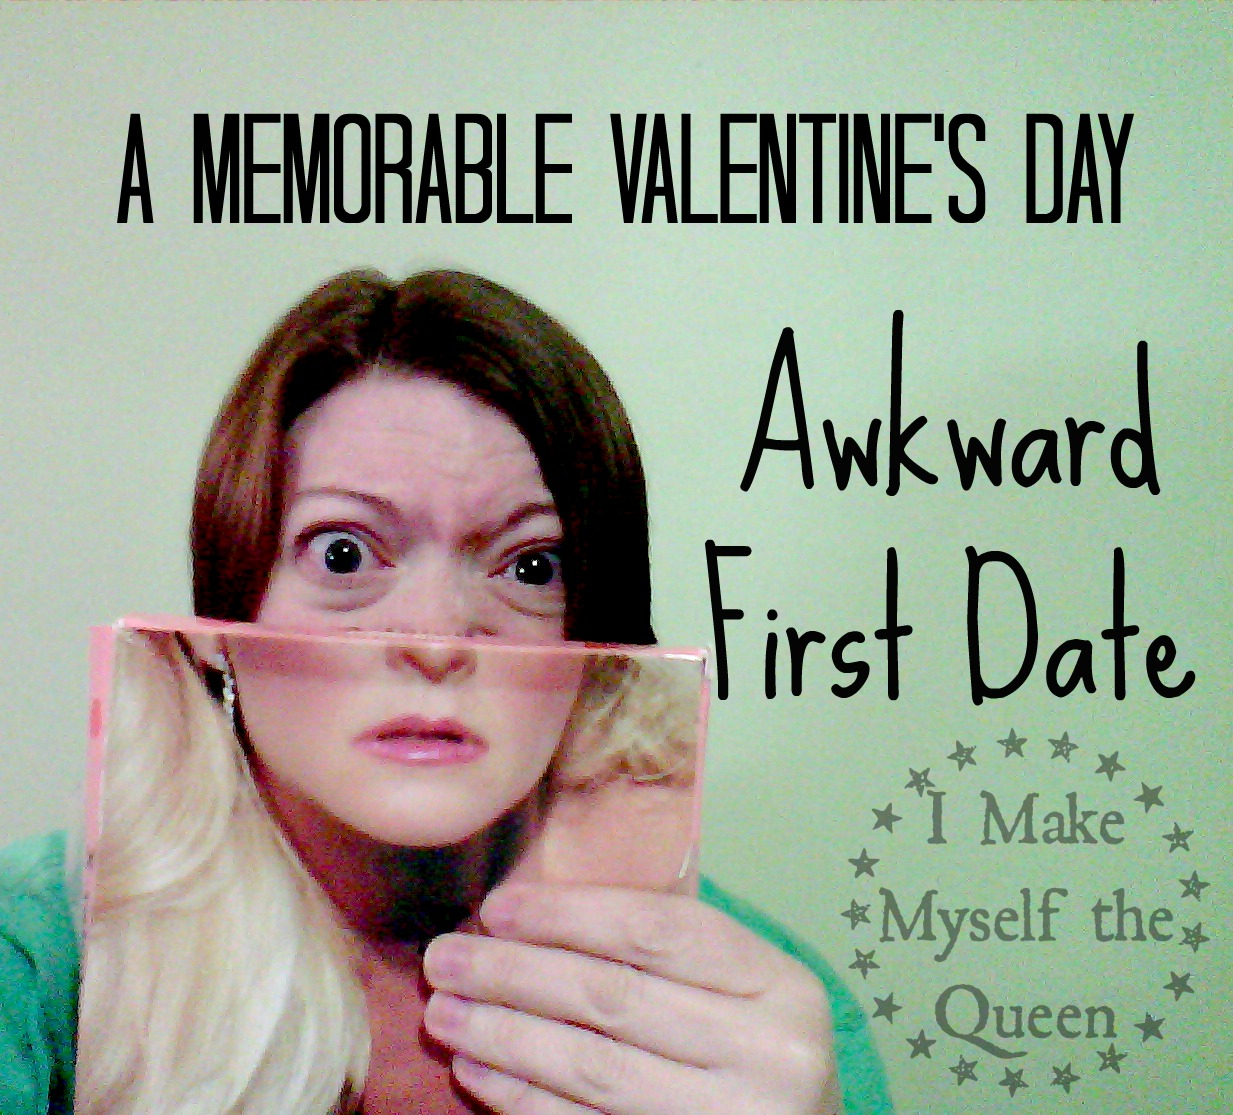 Dating awkward